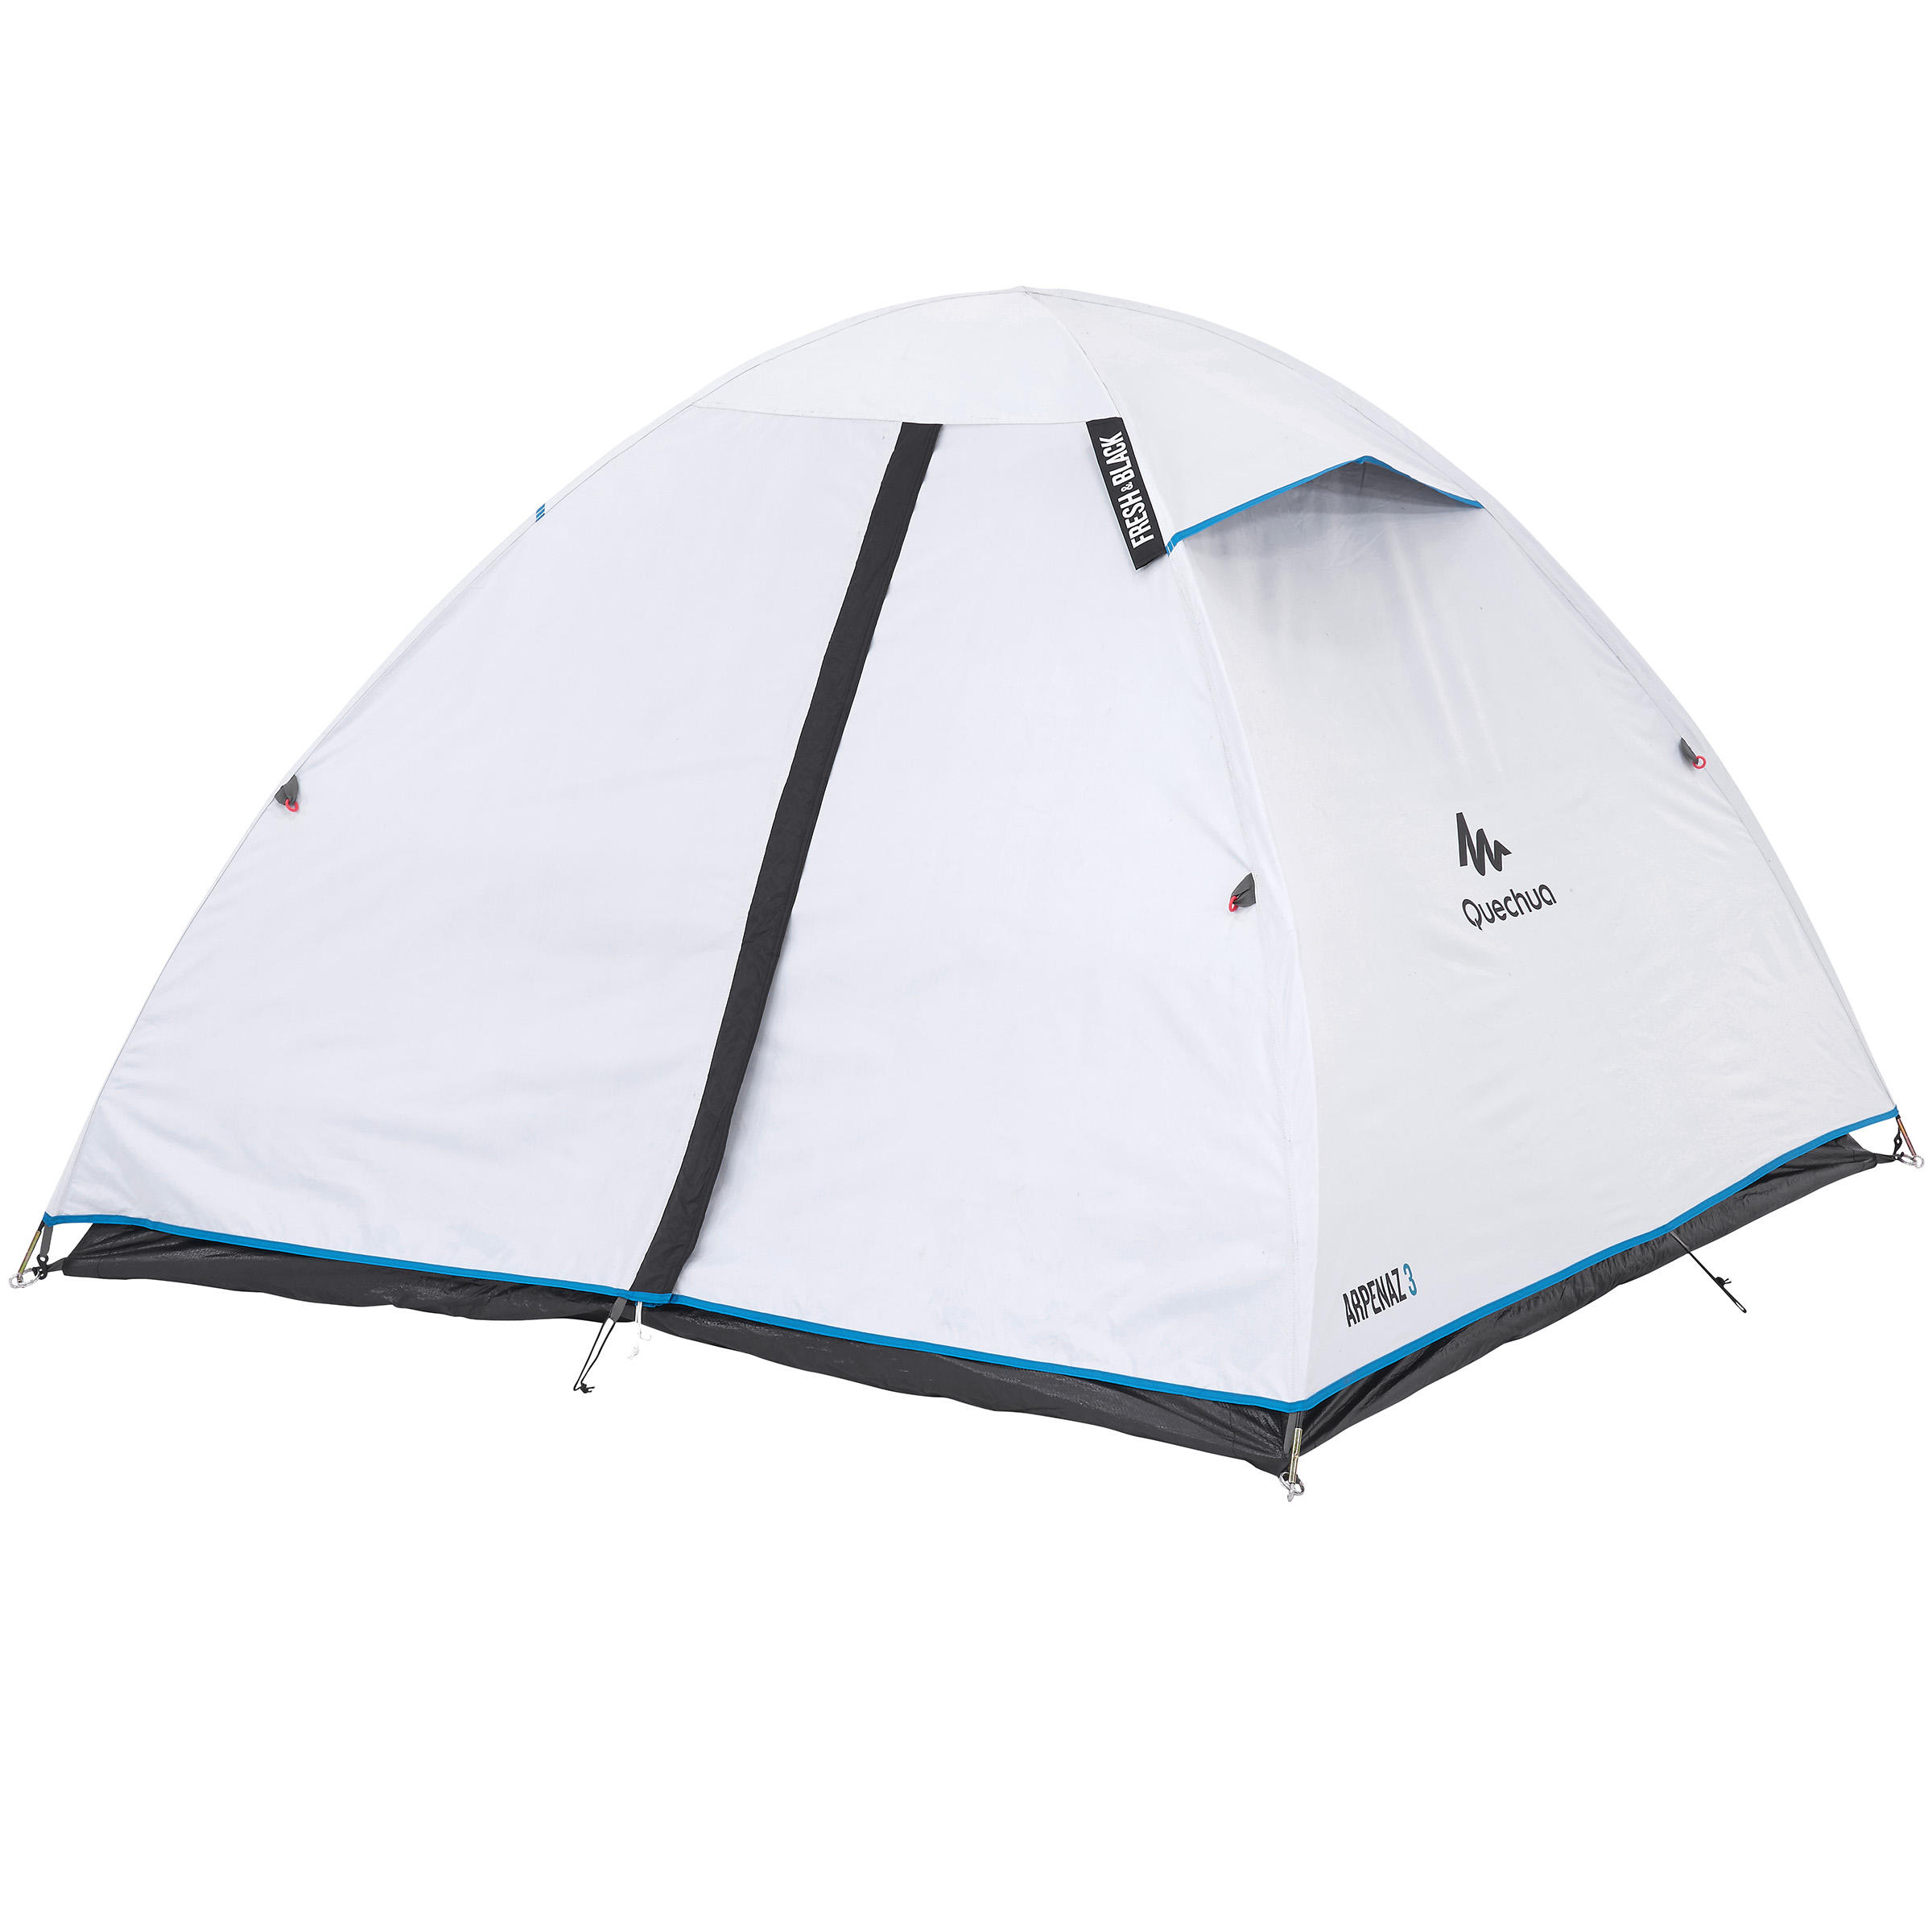 Fresh& Black Camping Tent Now Buy Online In India On Decathlon In ~ 14011927_Camping Liegestuhl Decathlon